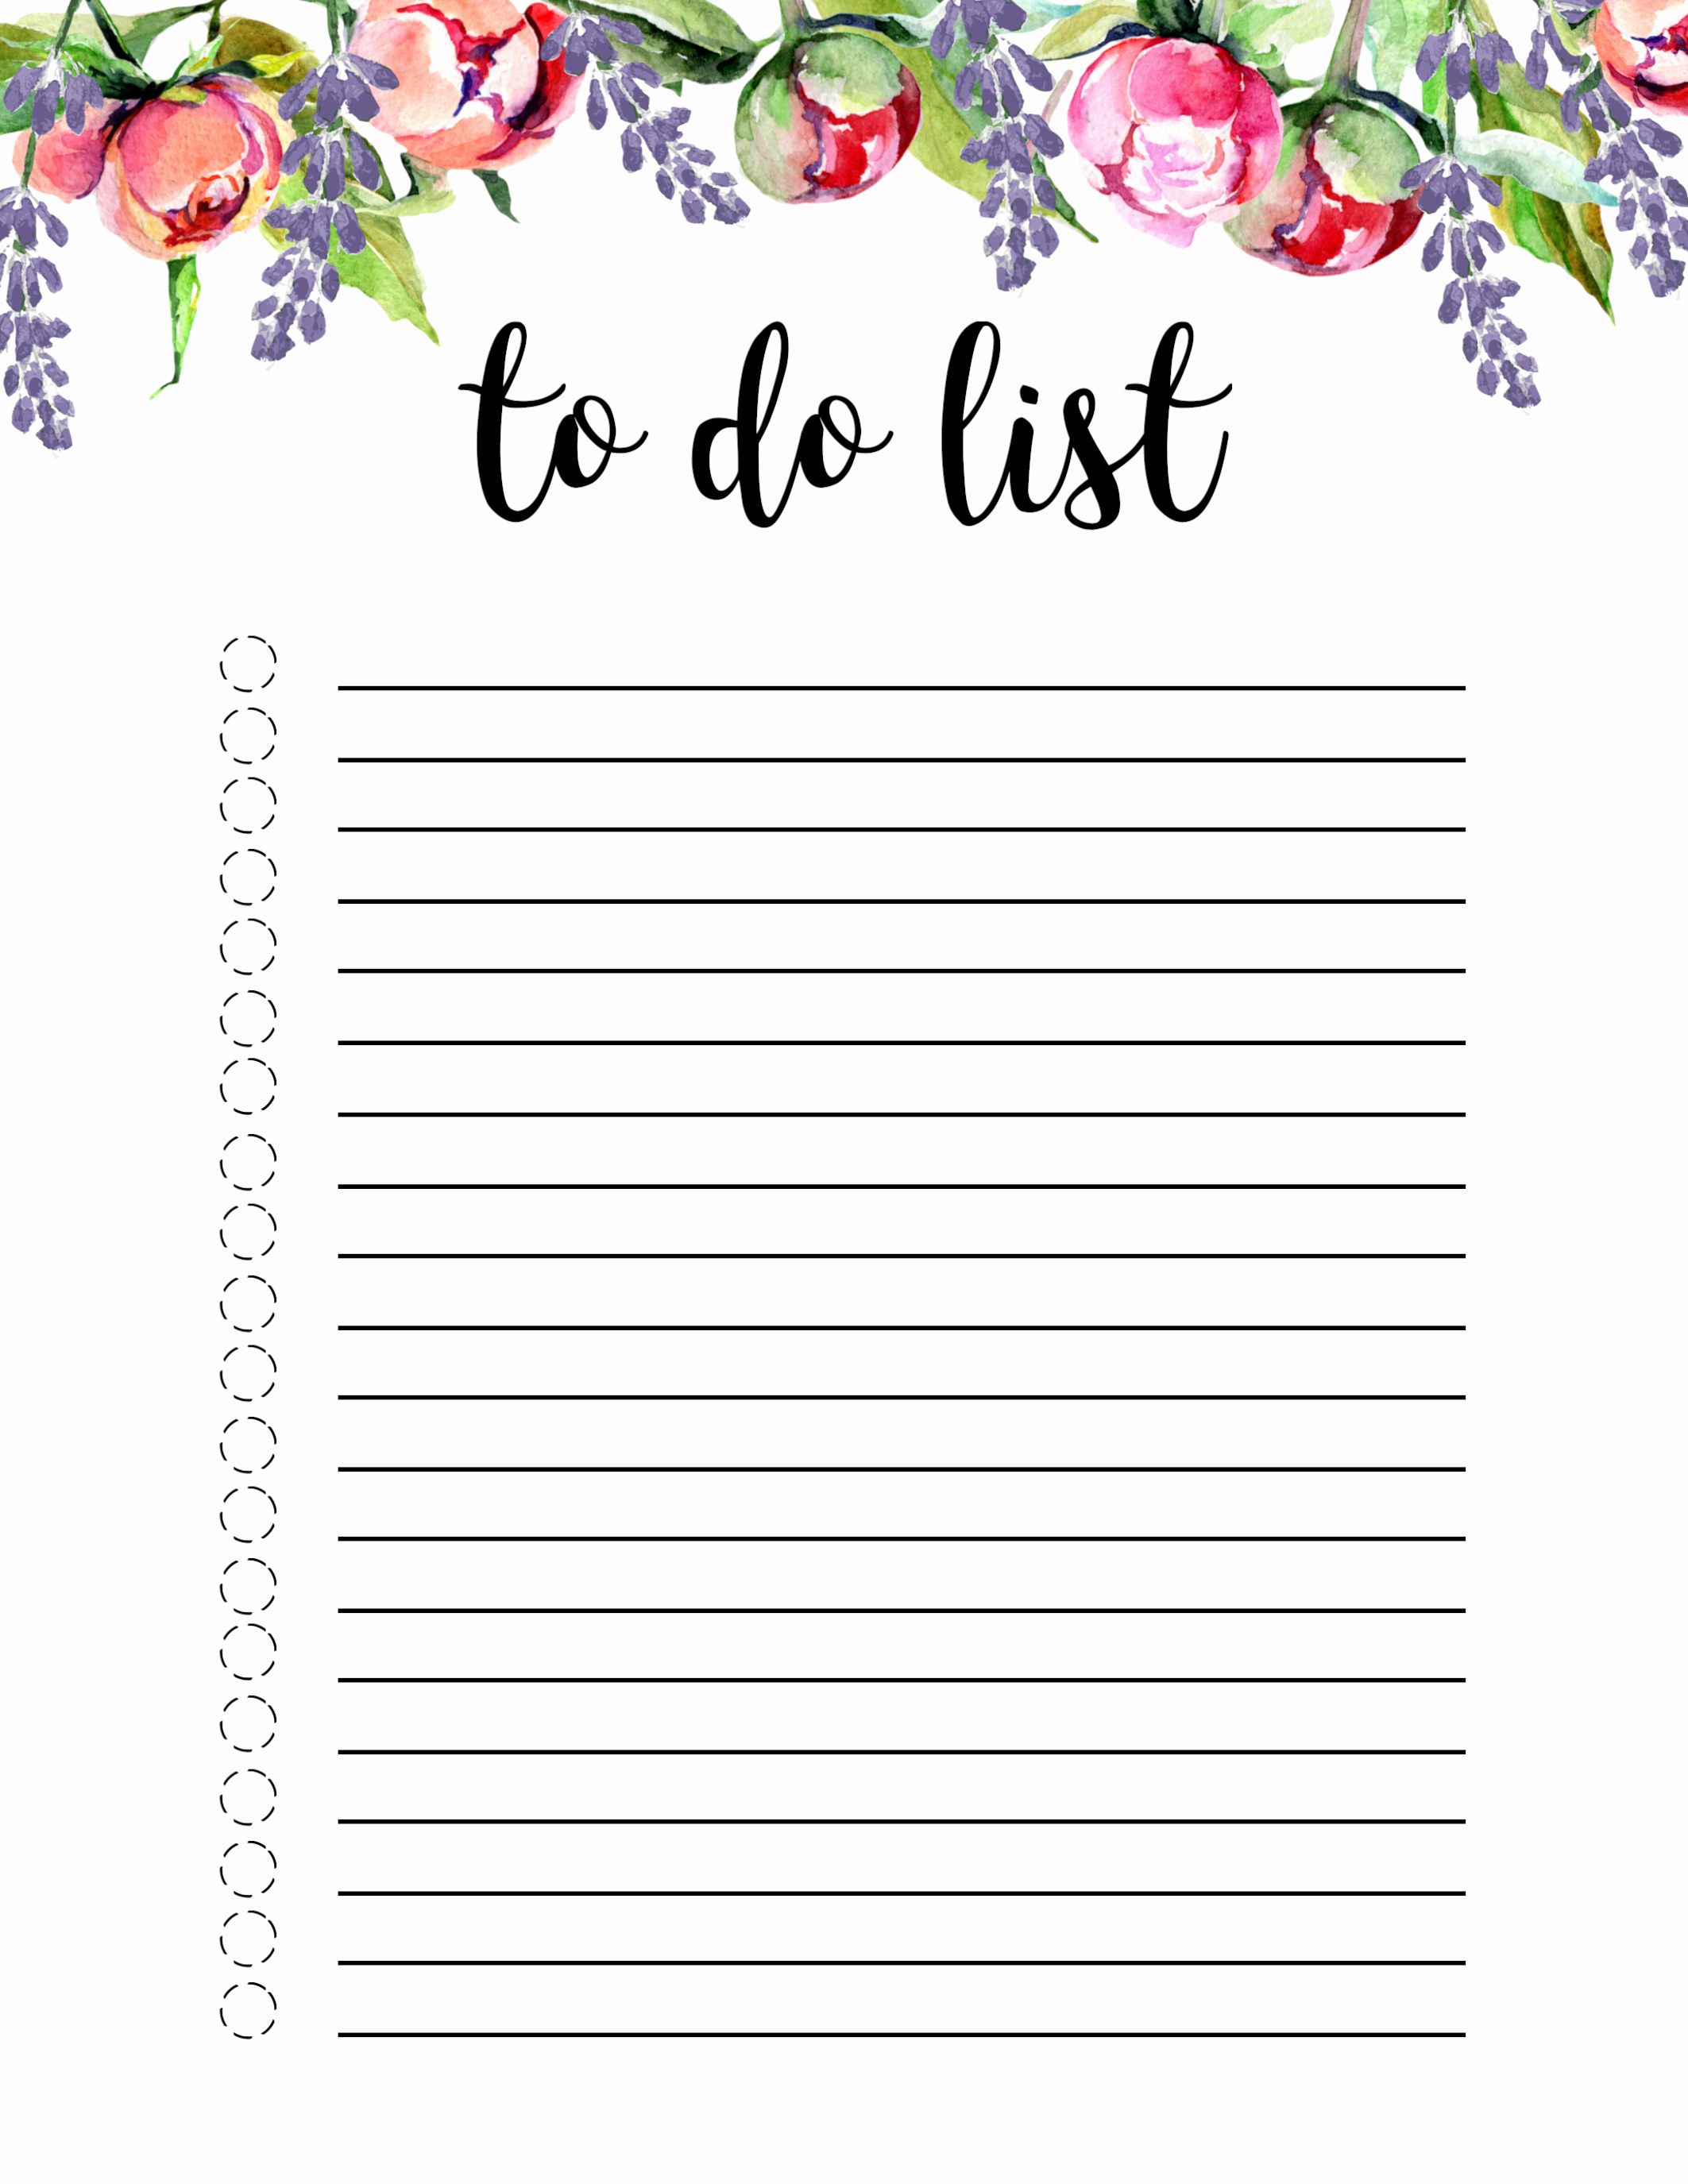 To Do List Templates Inspirational Floral to Do List Printable Template Paper Trail Design